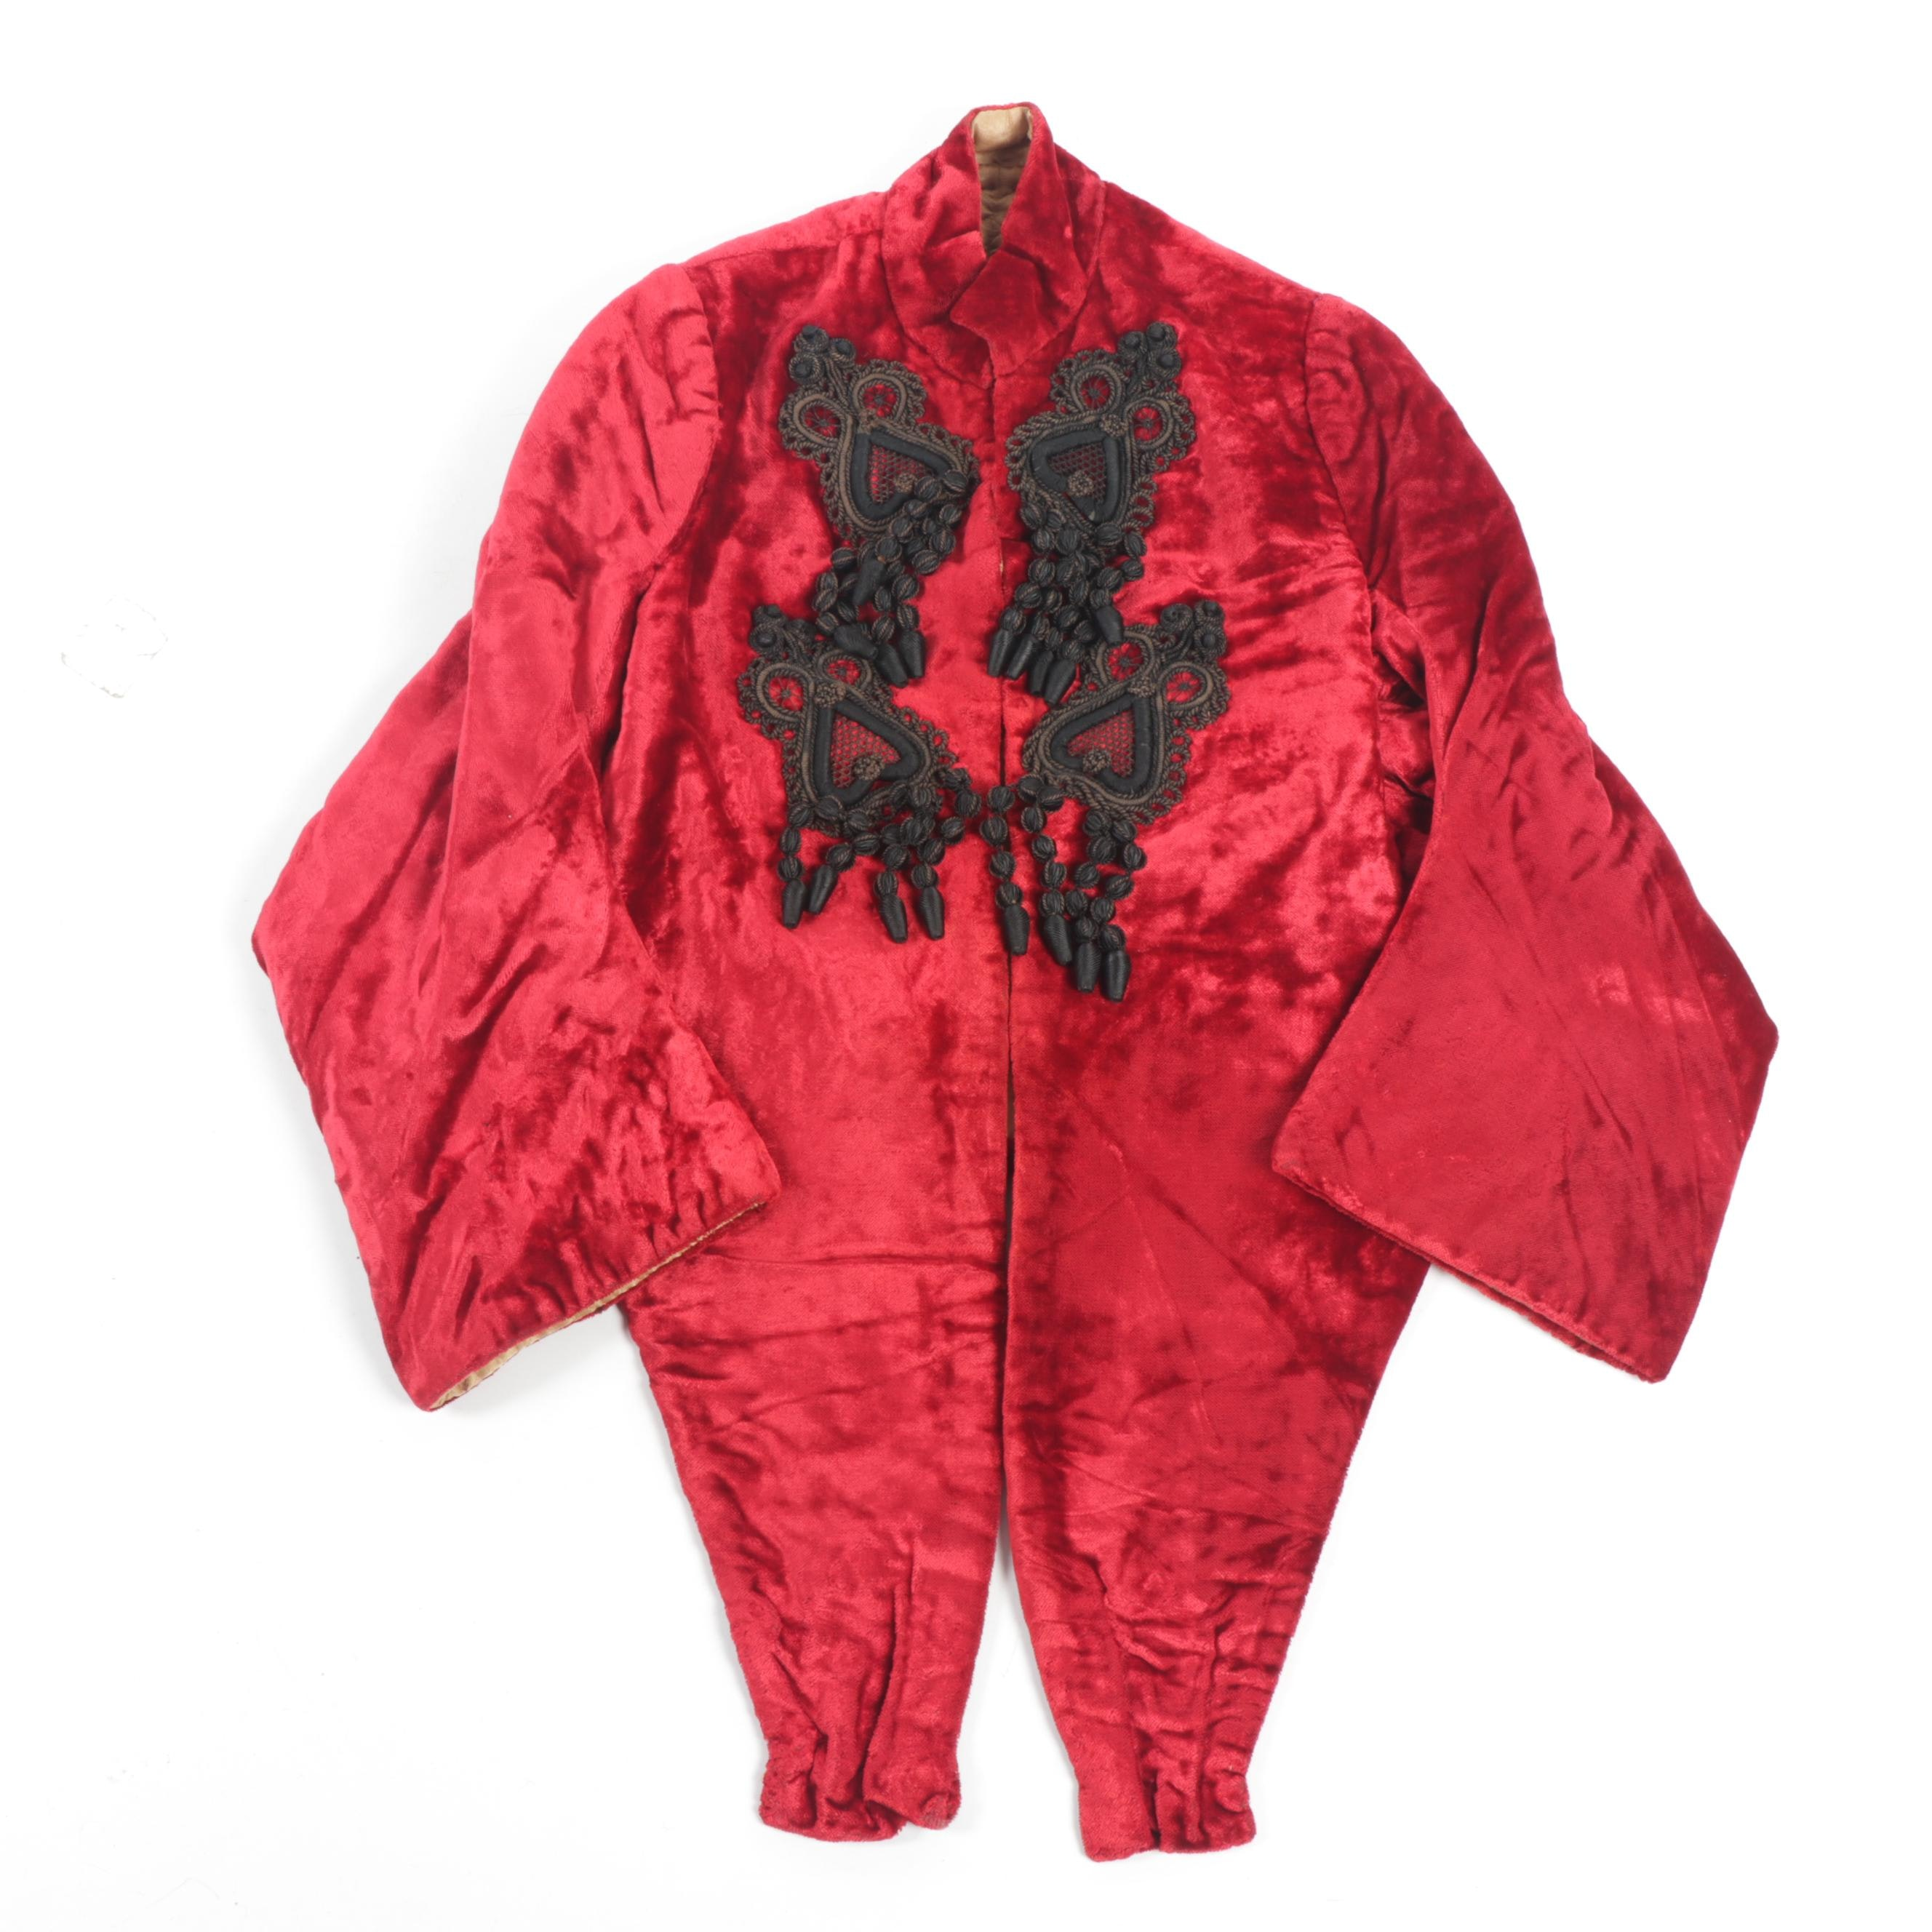 Red Velvet Stole Jacket with Black Ribbon Work Frog Closures and Quilted Lining